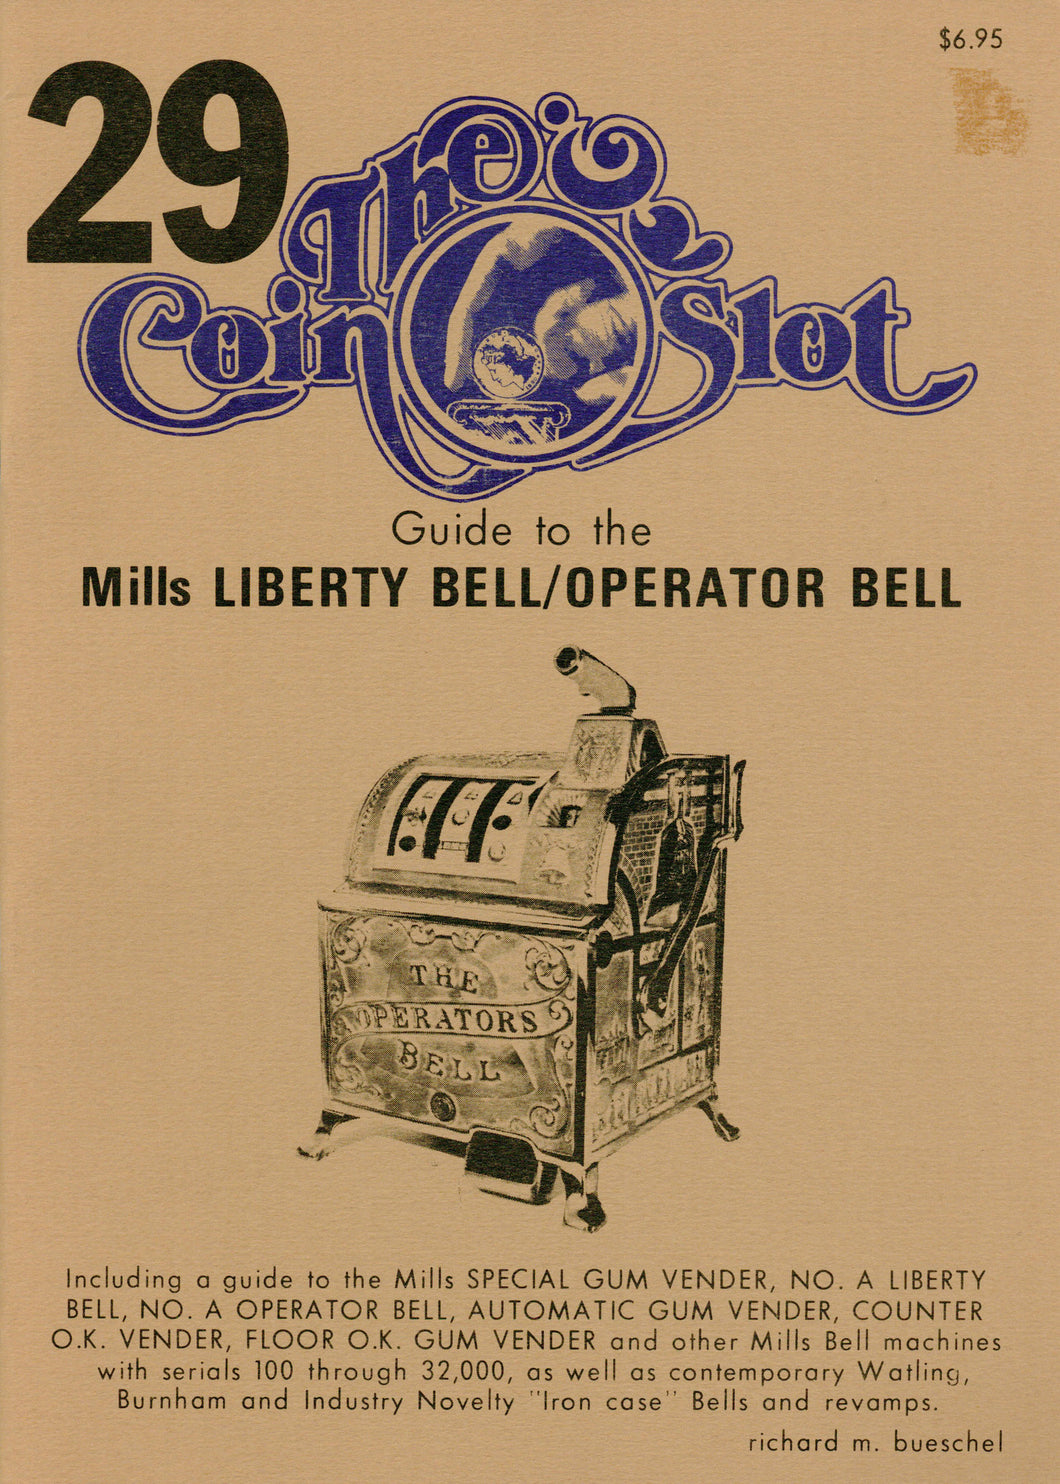 Coin Slot #29. Guide to the Mills Liberty Bell/Operator Bell